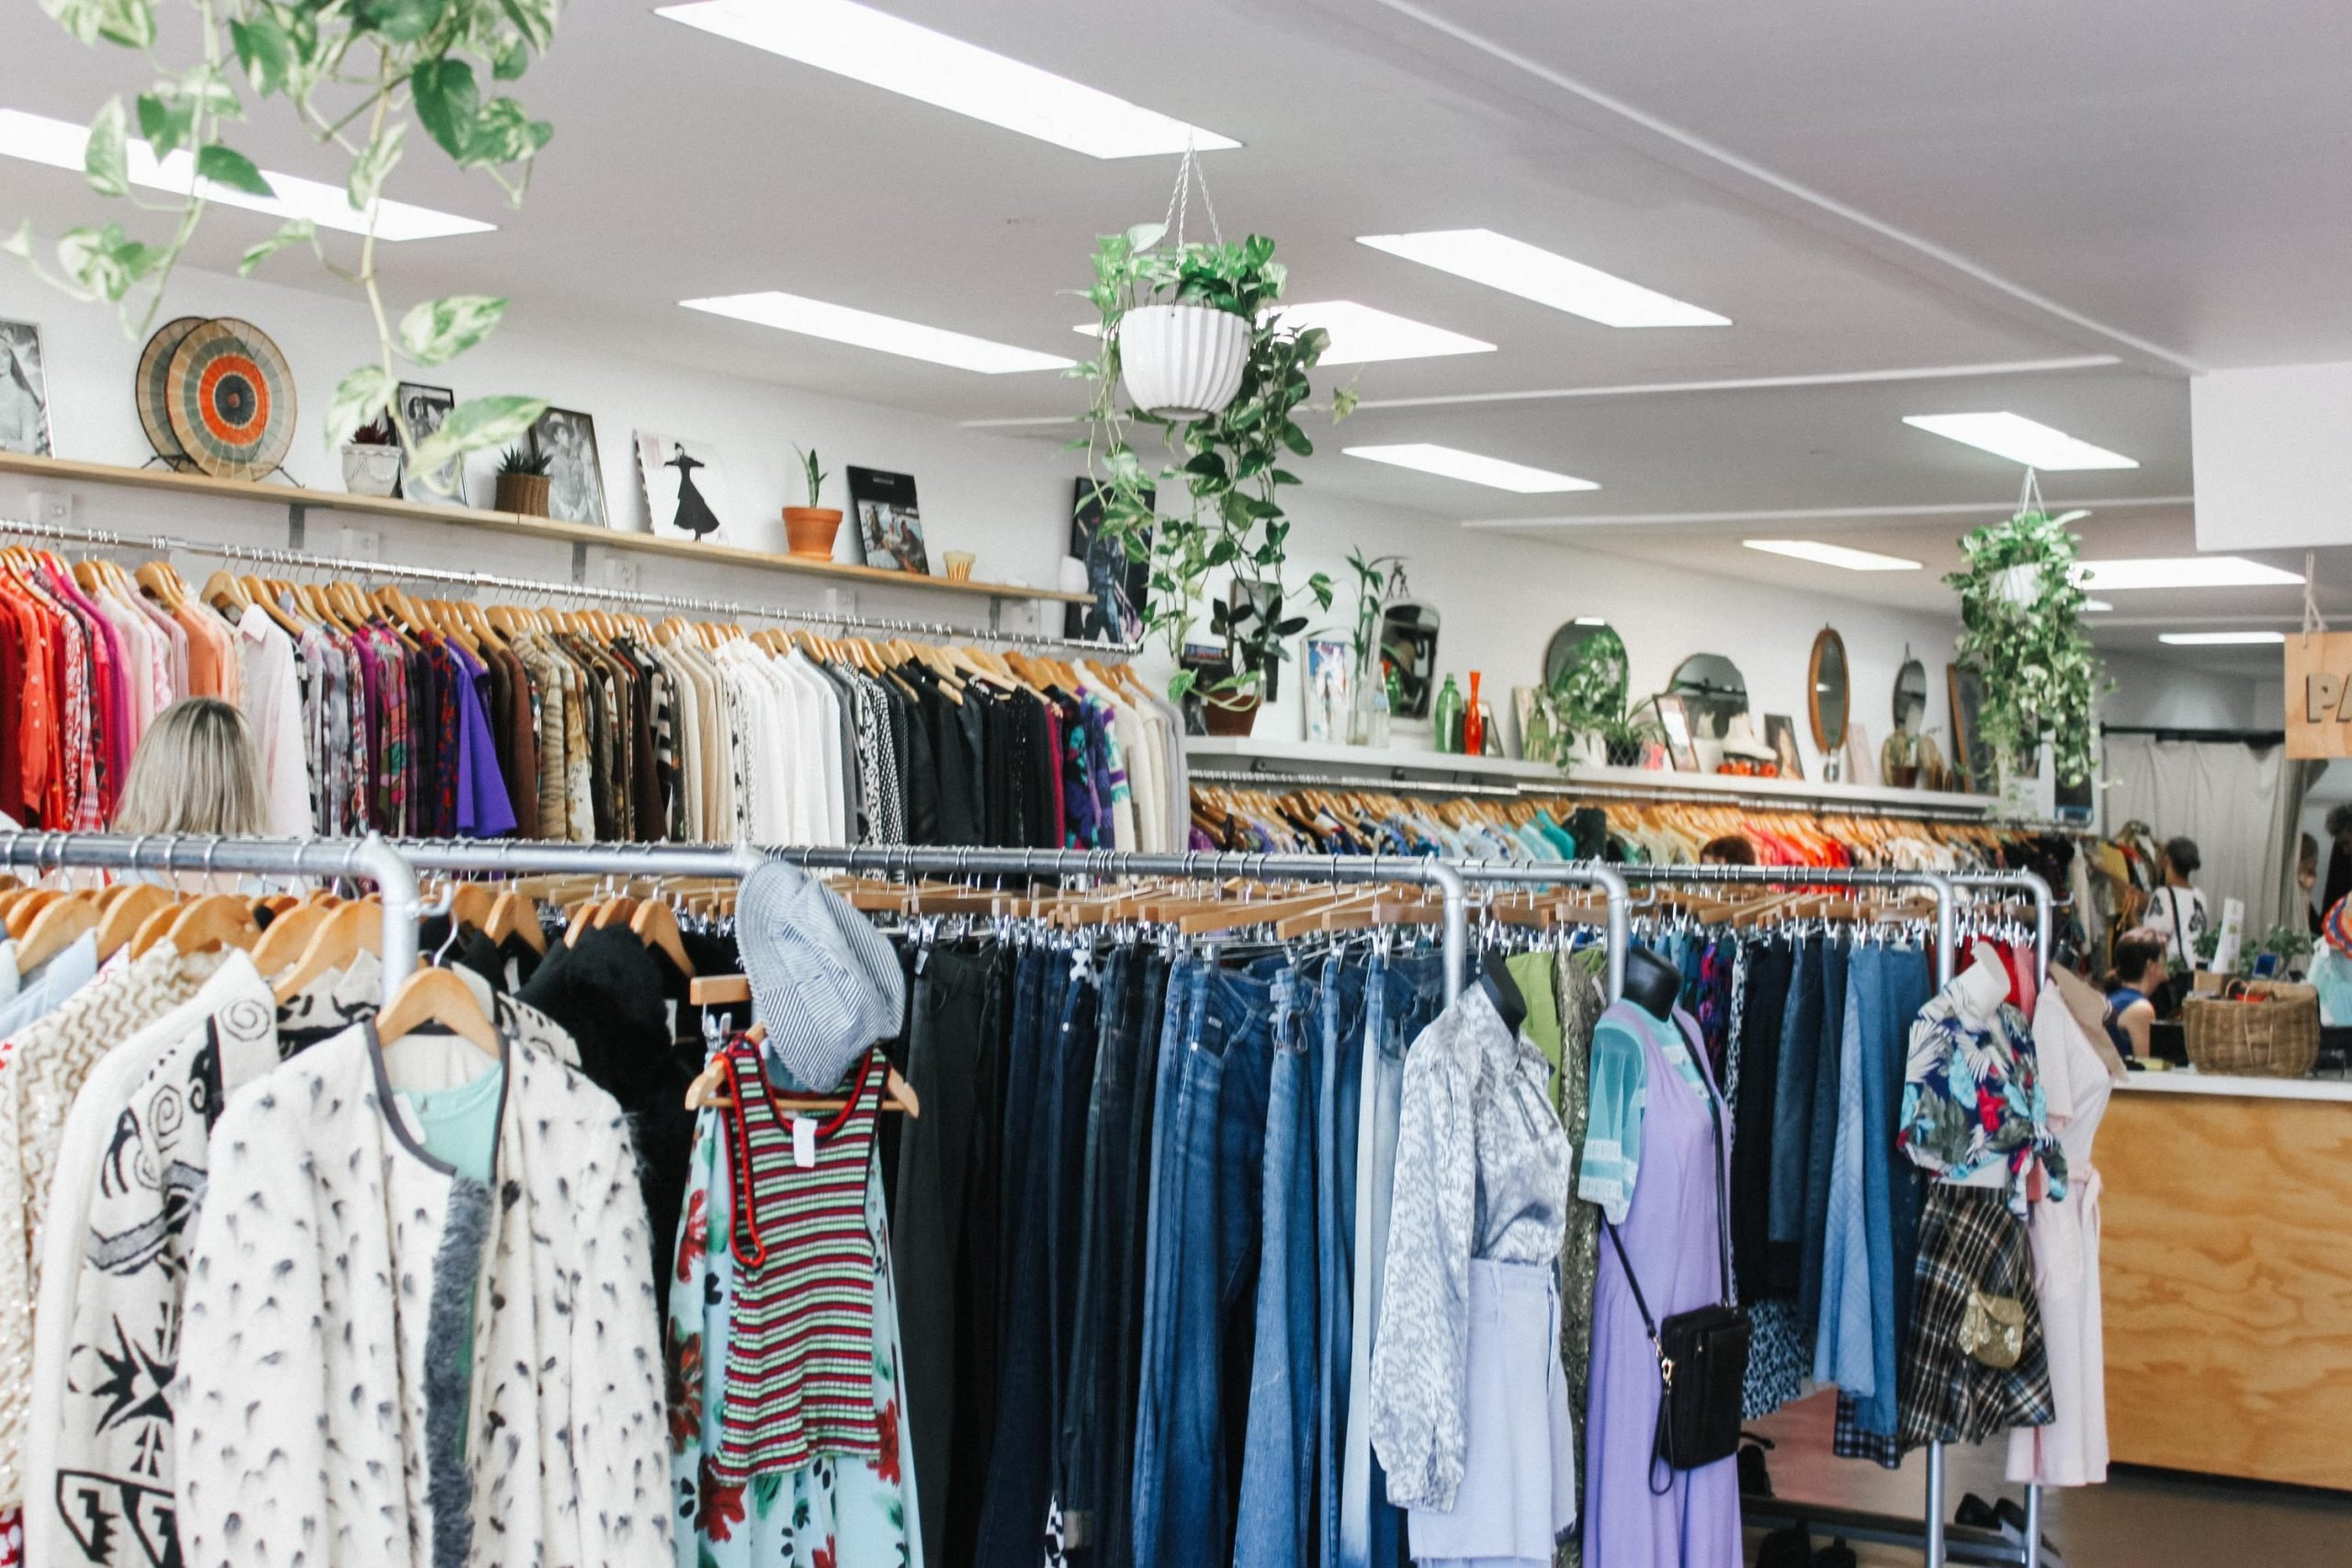 Interior of a charity shop with clothes rails